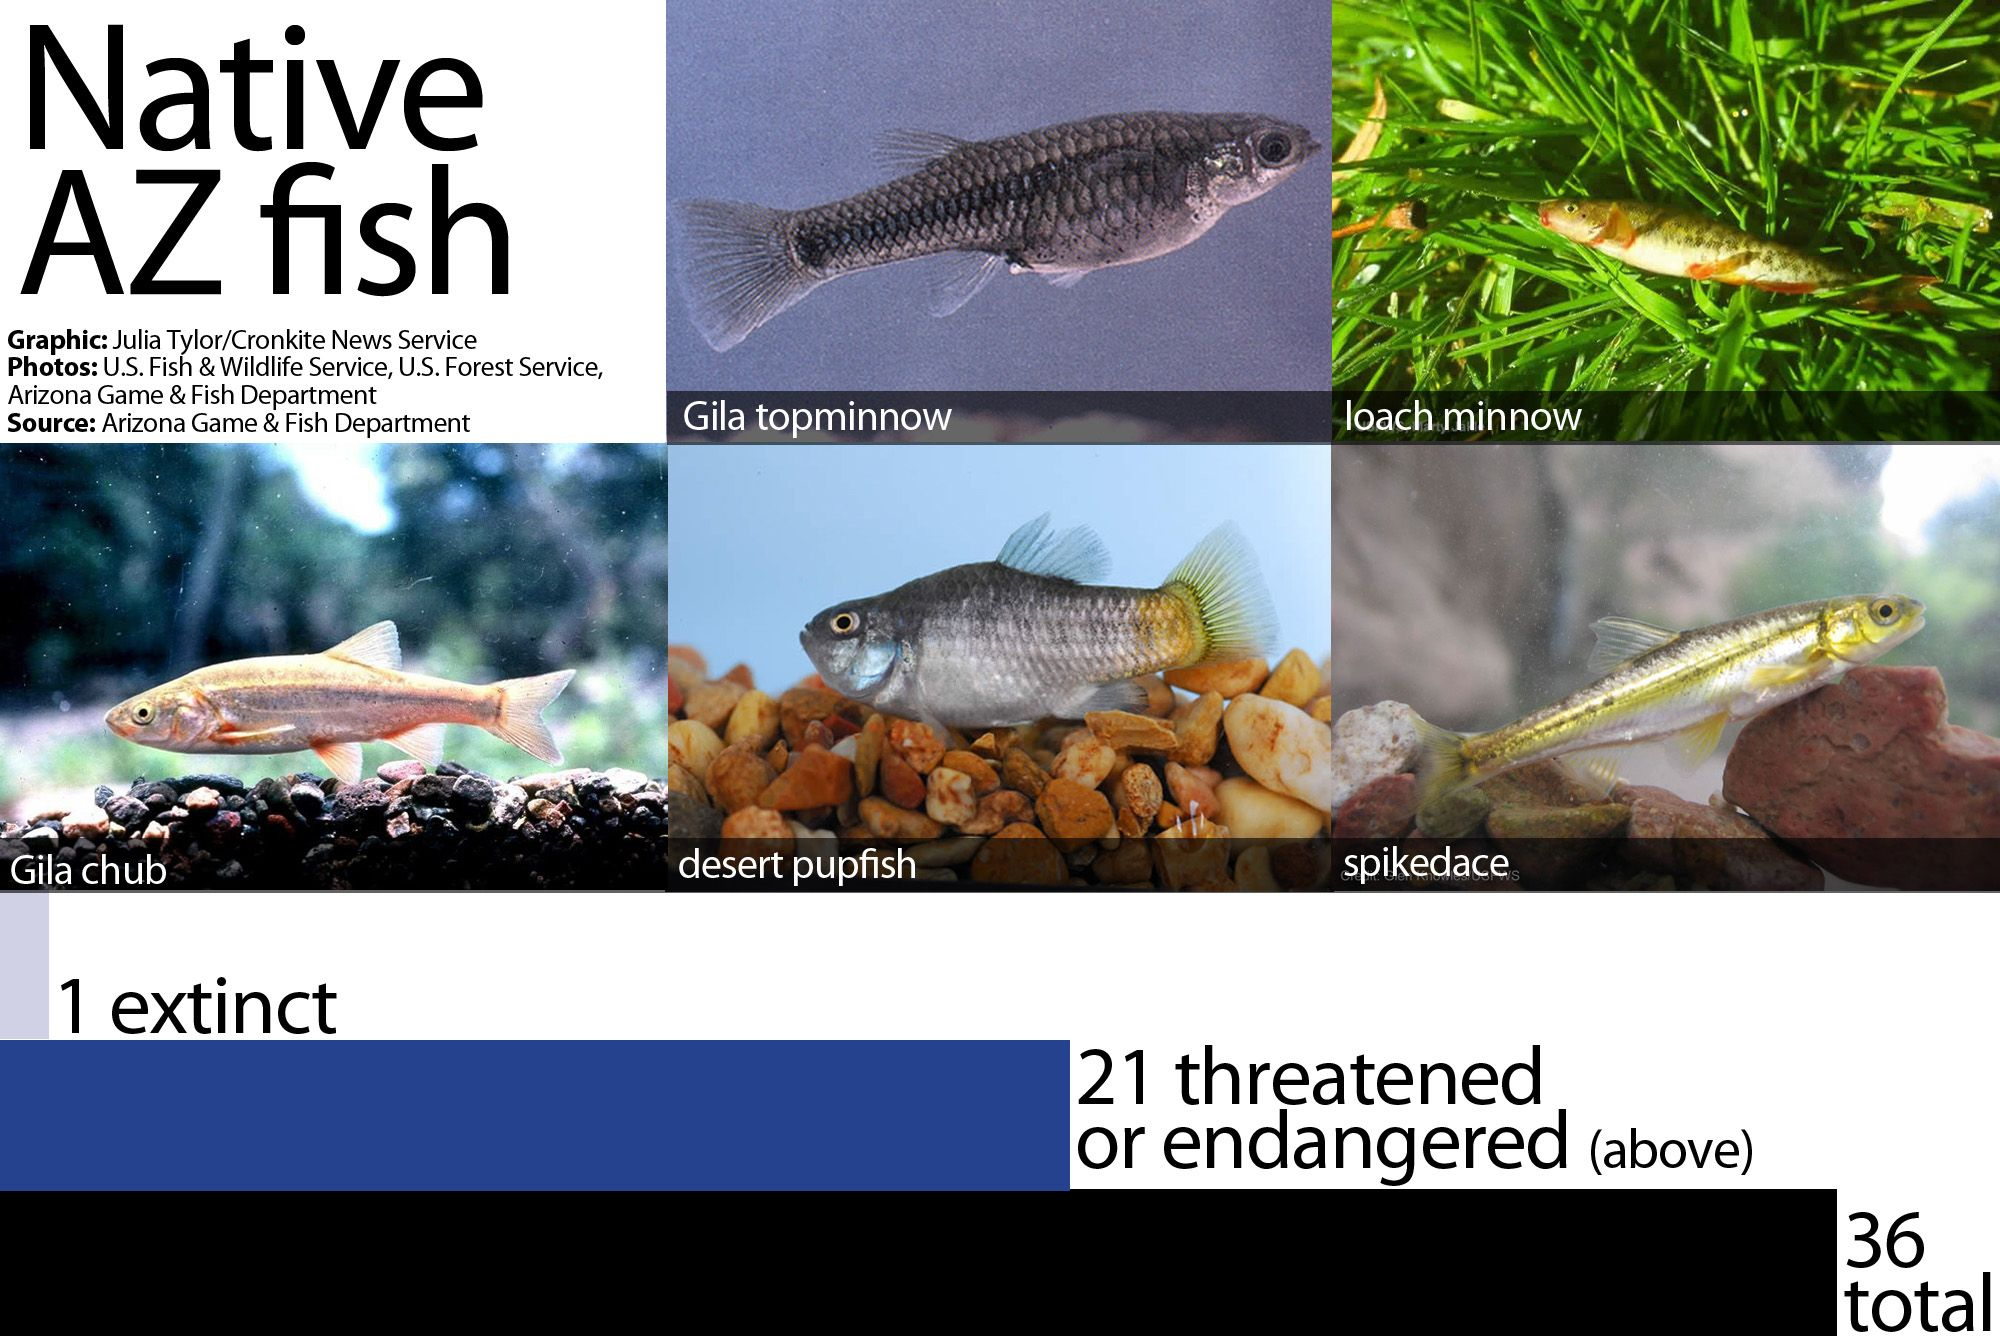 Bid to regulate fish poisons draws fire from environmental groups